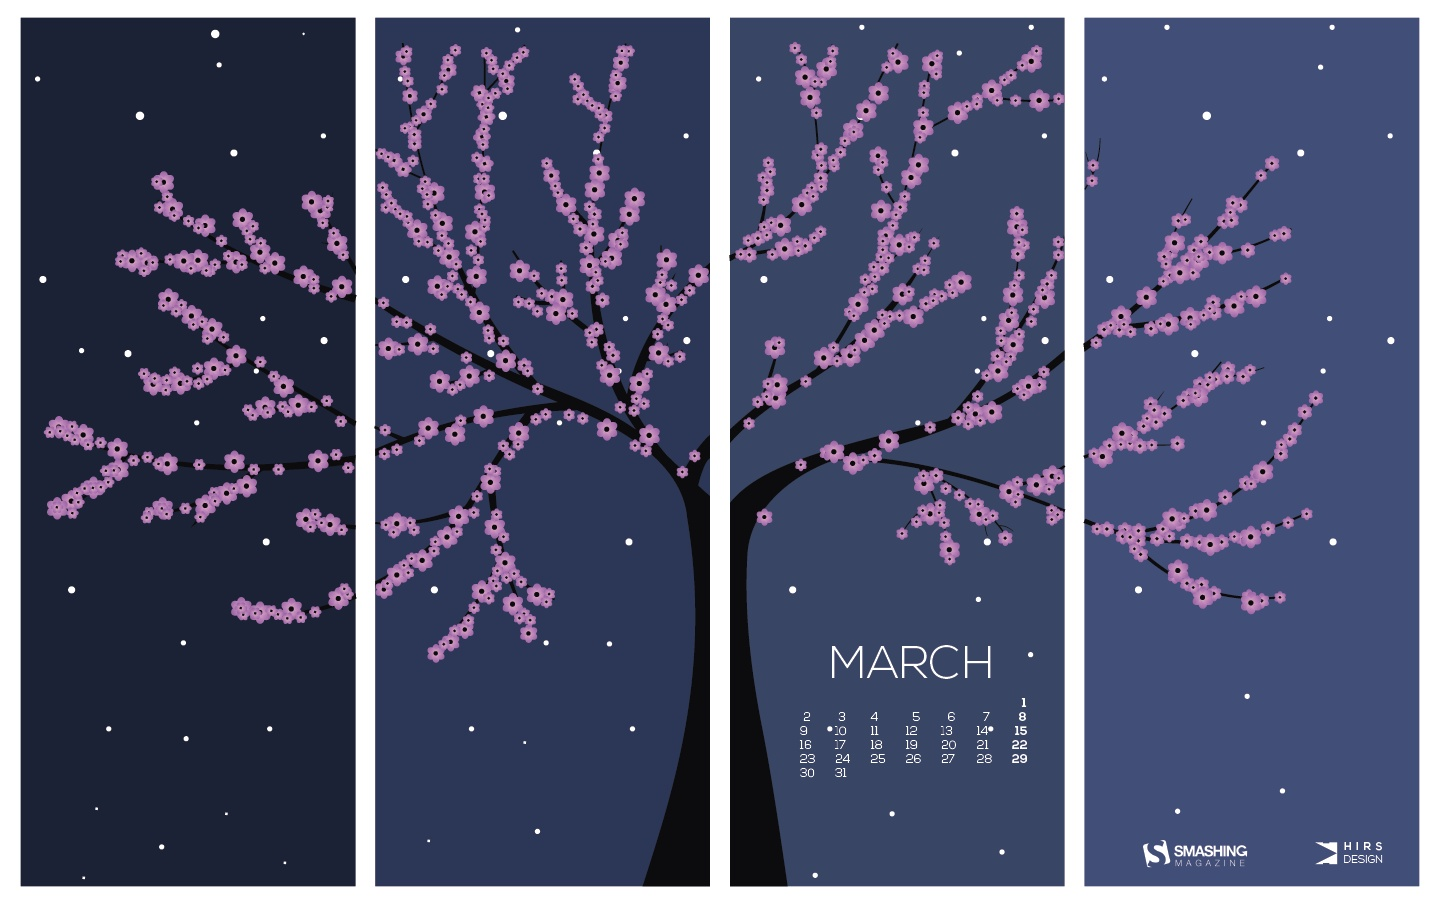 Month year calendar wallpapers 51607